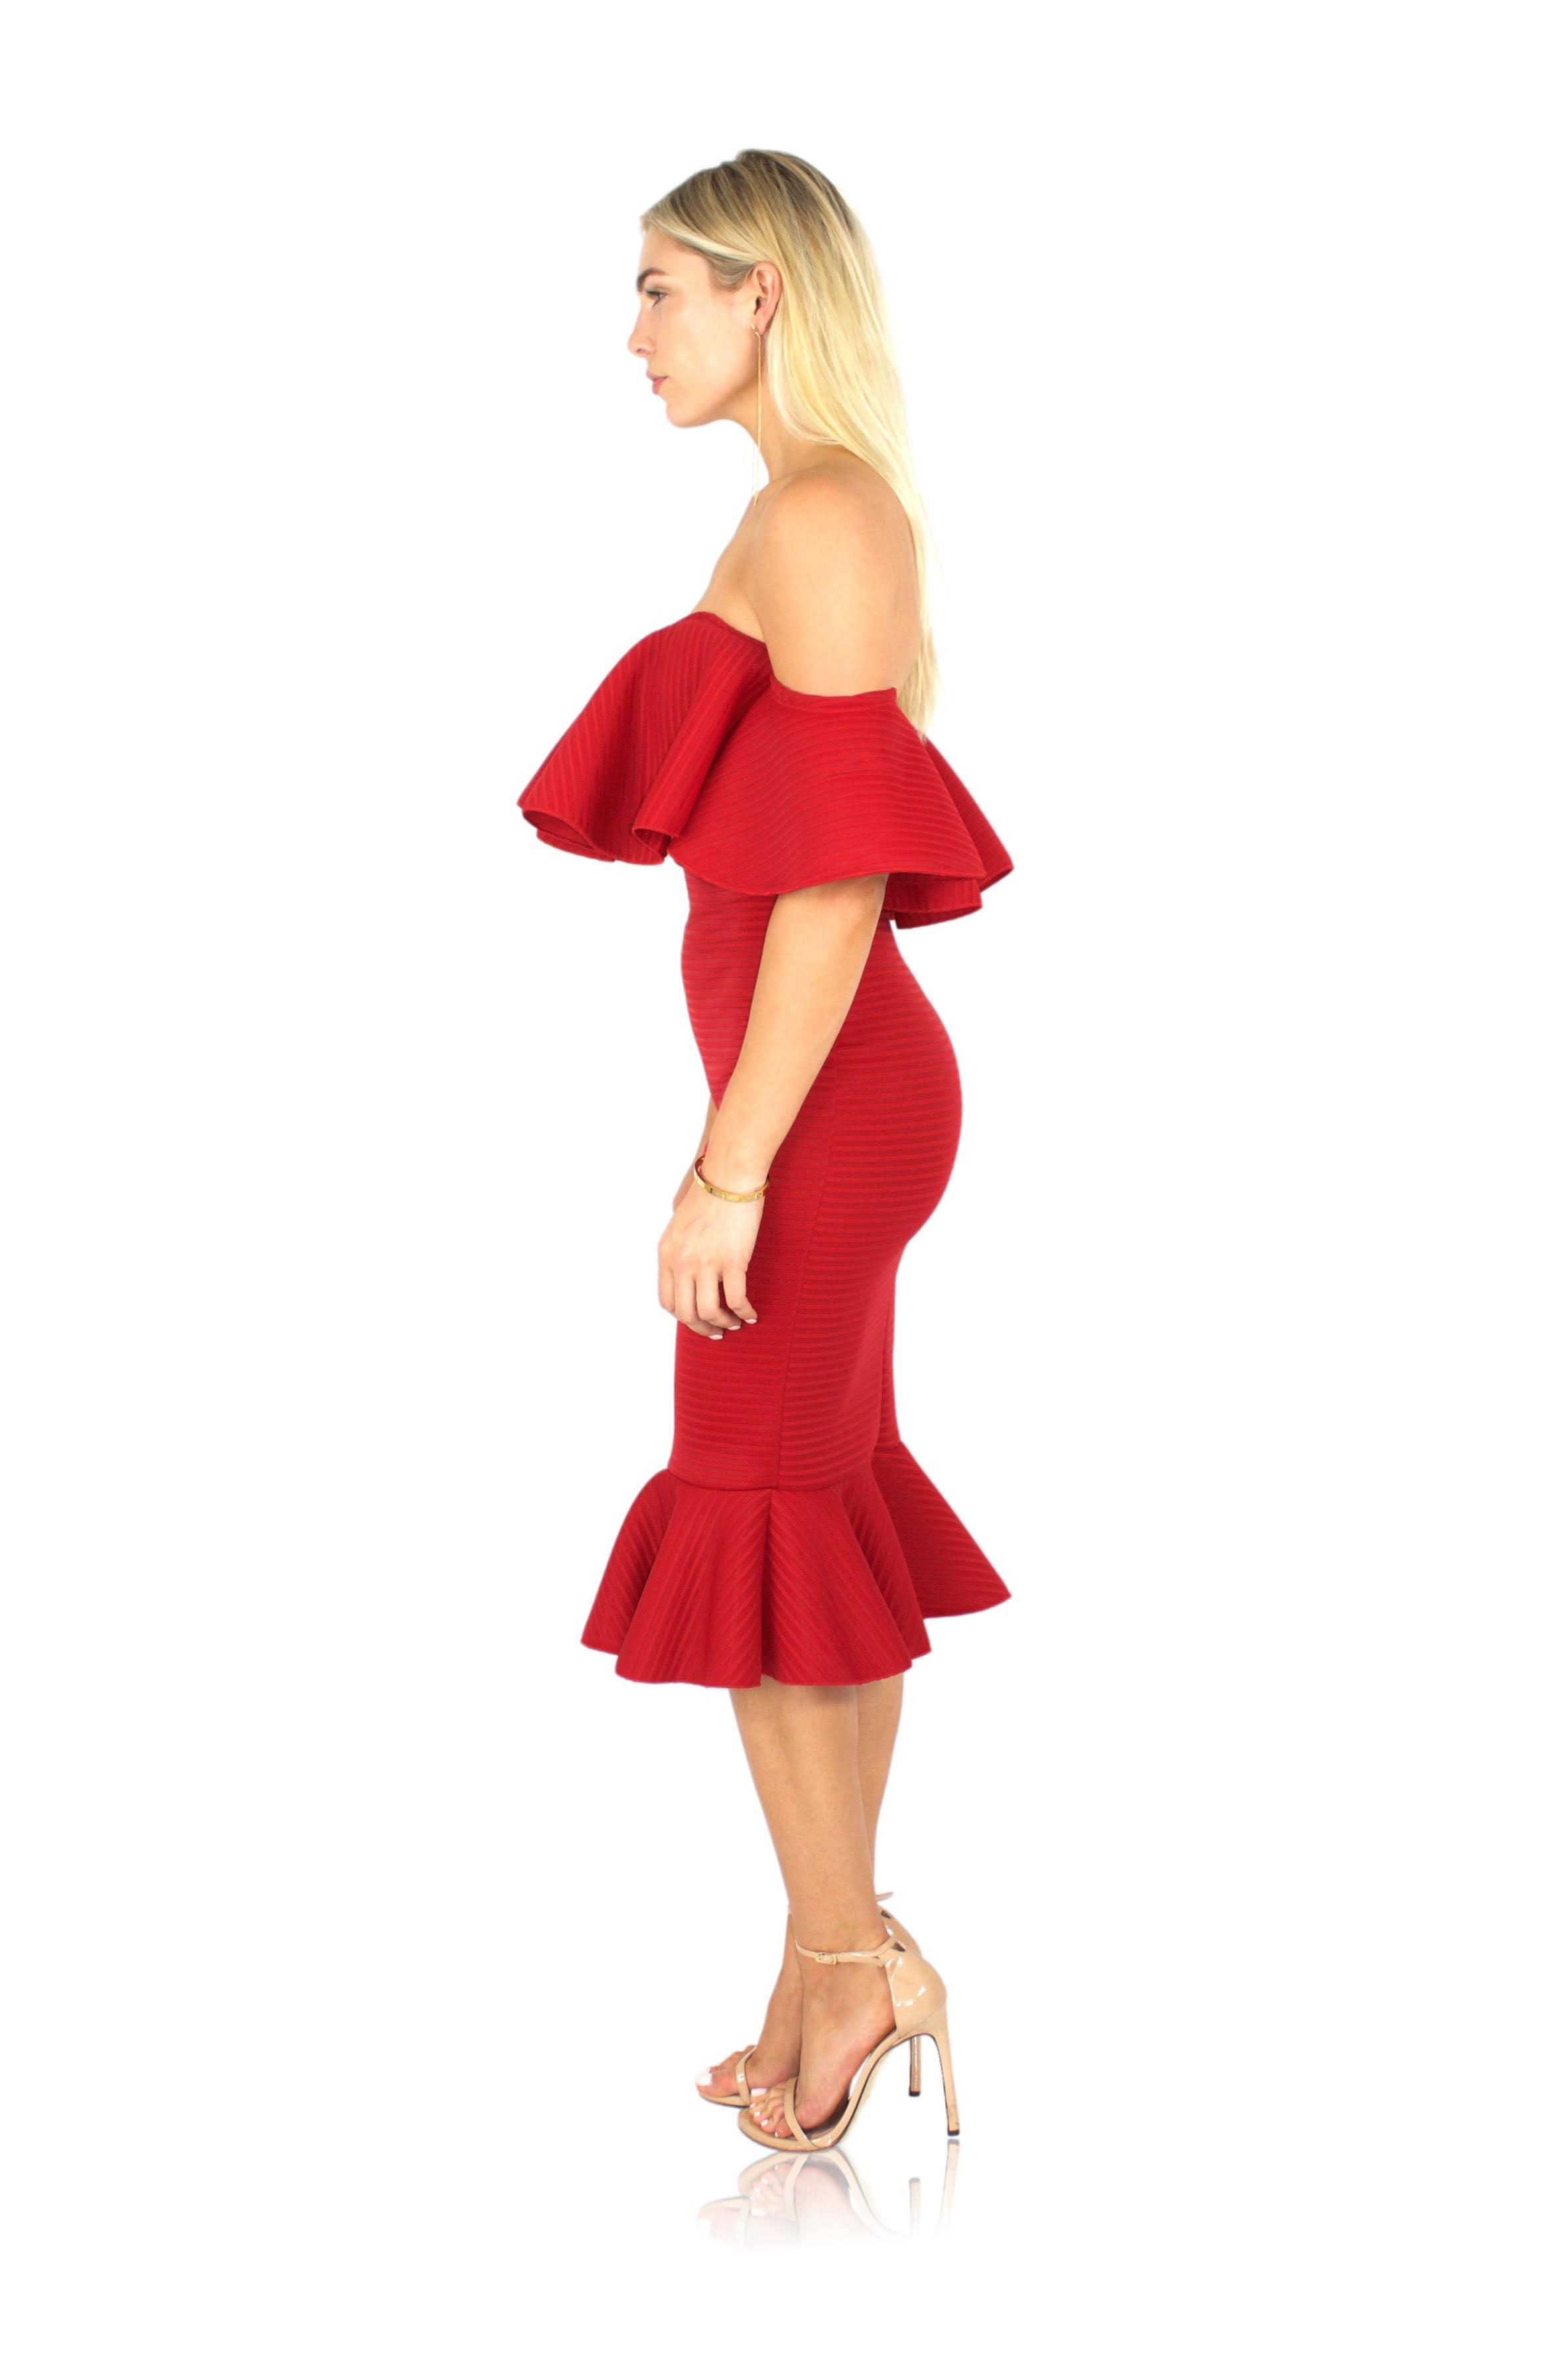 VOILA DRESS IN RED